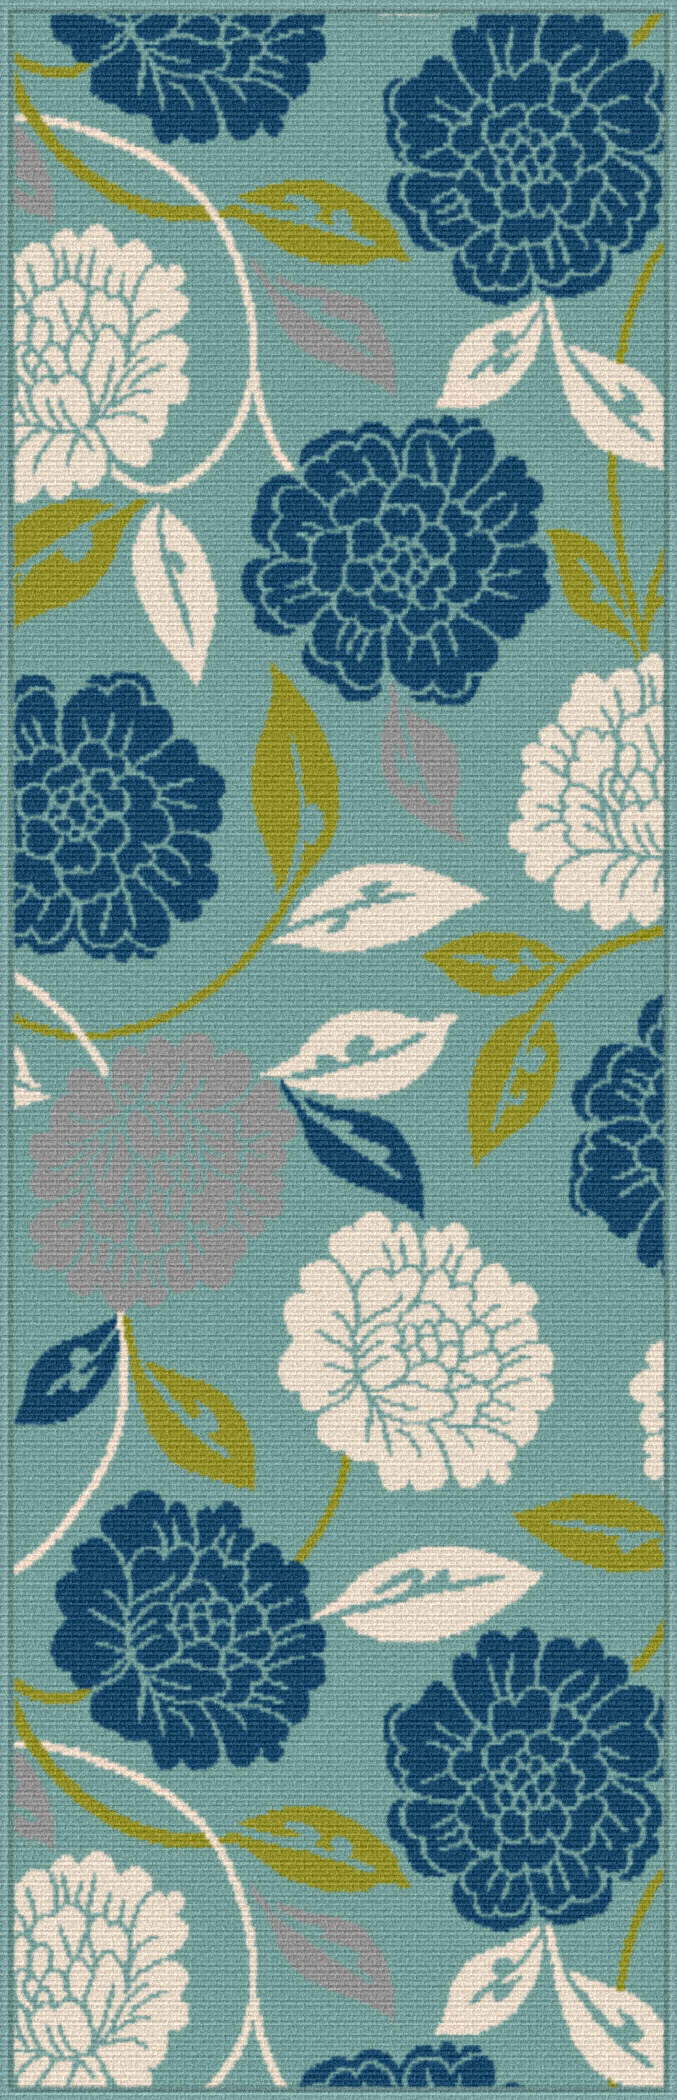 Garden City Gct1032 Aqua Transitional Area Rug